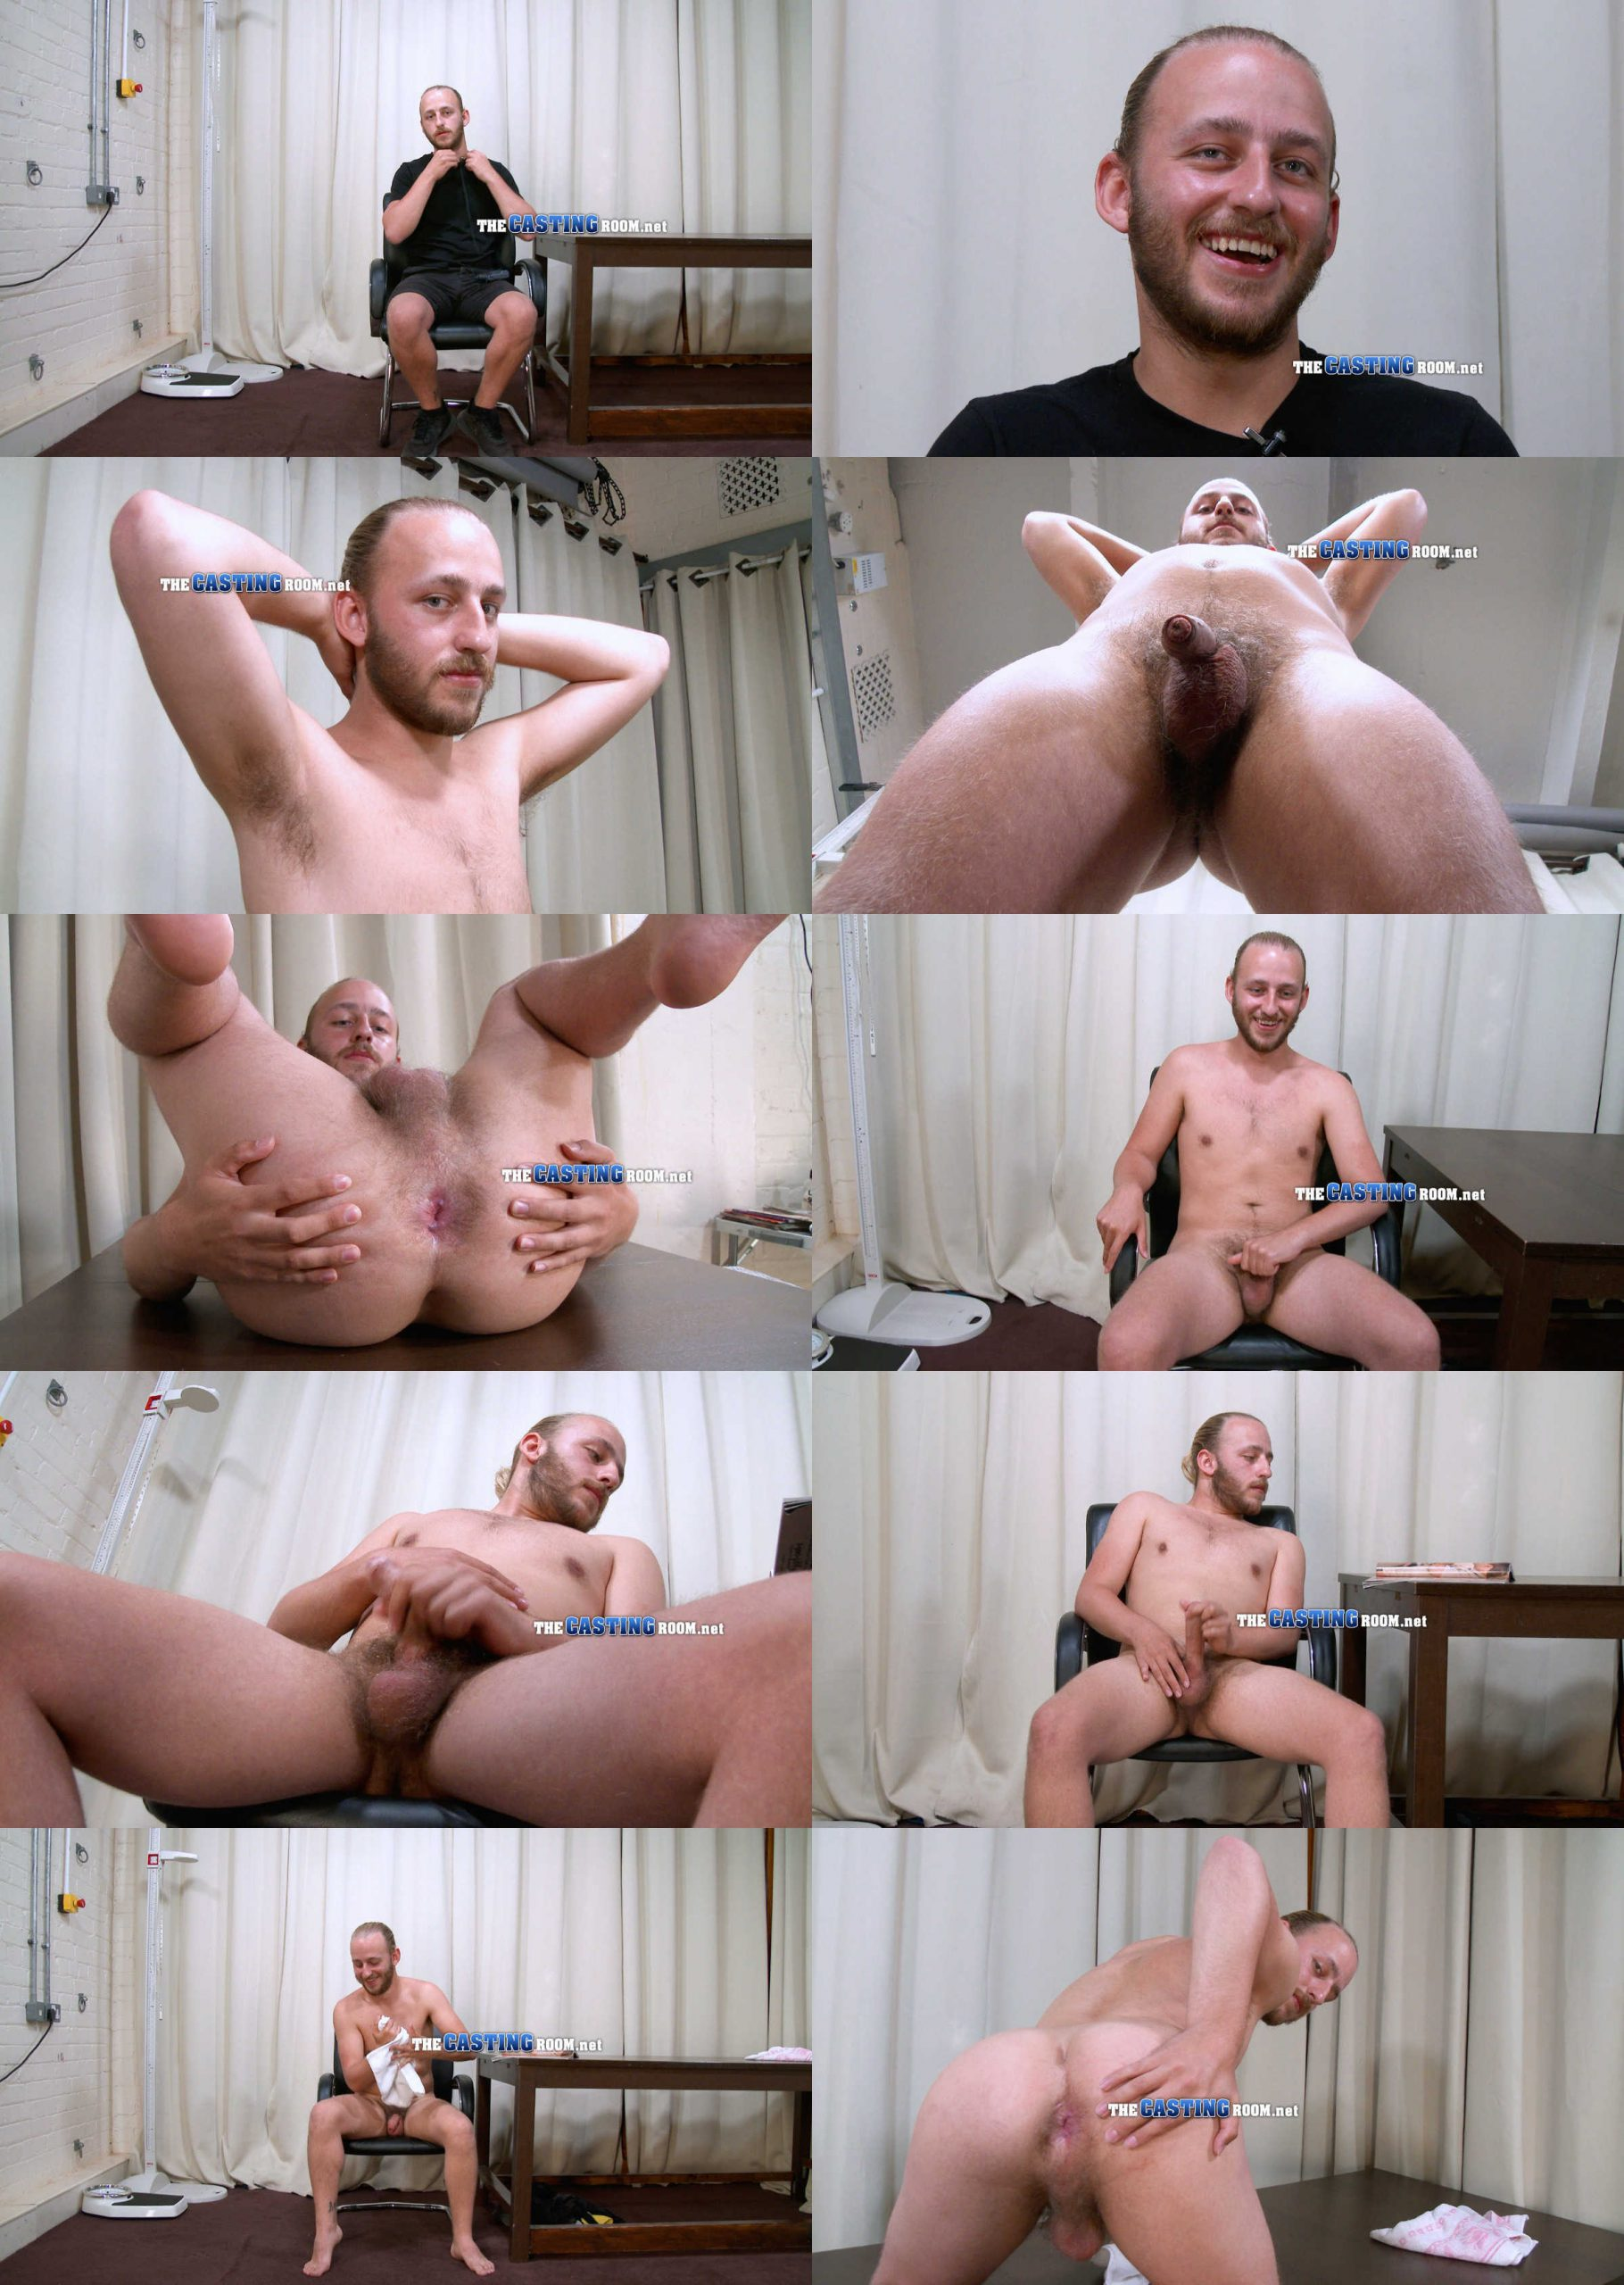 sacha stripping naked and wanking thecastingroom